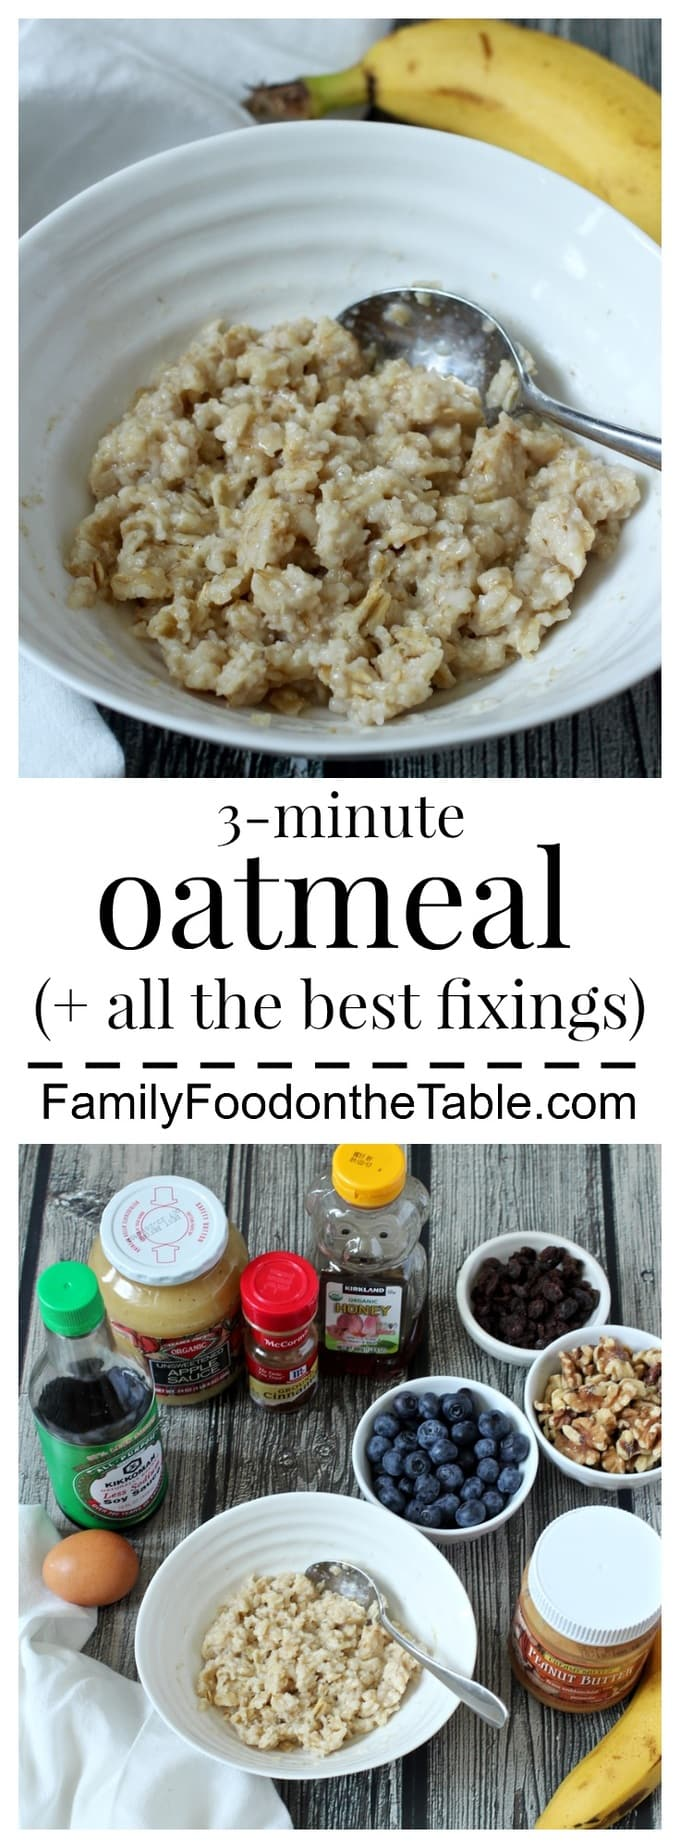 Oatmeal is our go-to super-fast, healthy breakfast - plus lots of ideas for toppings!